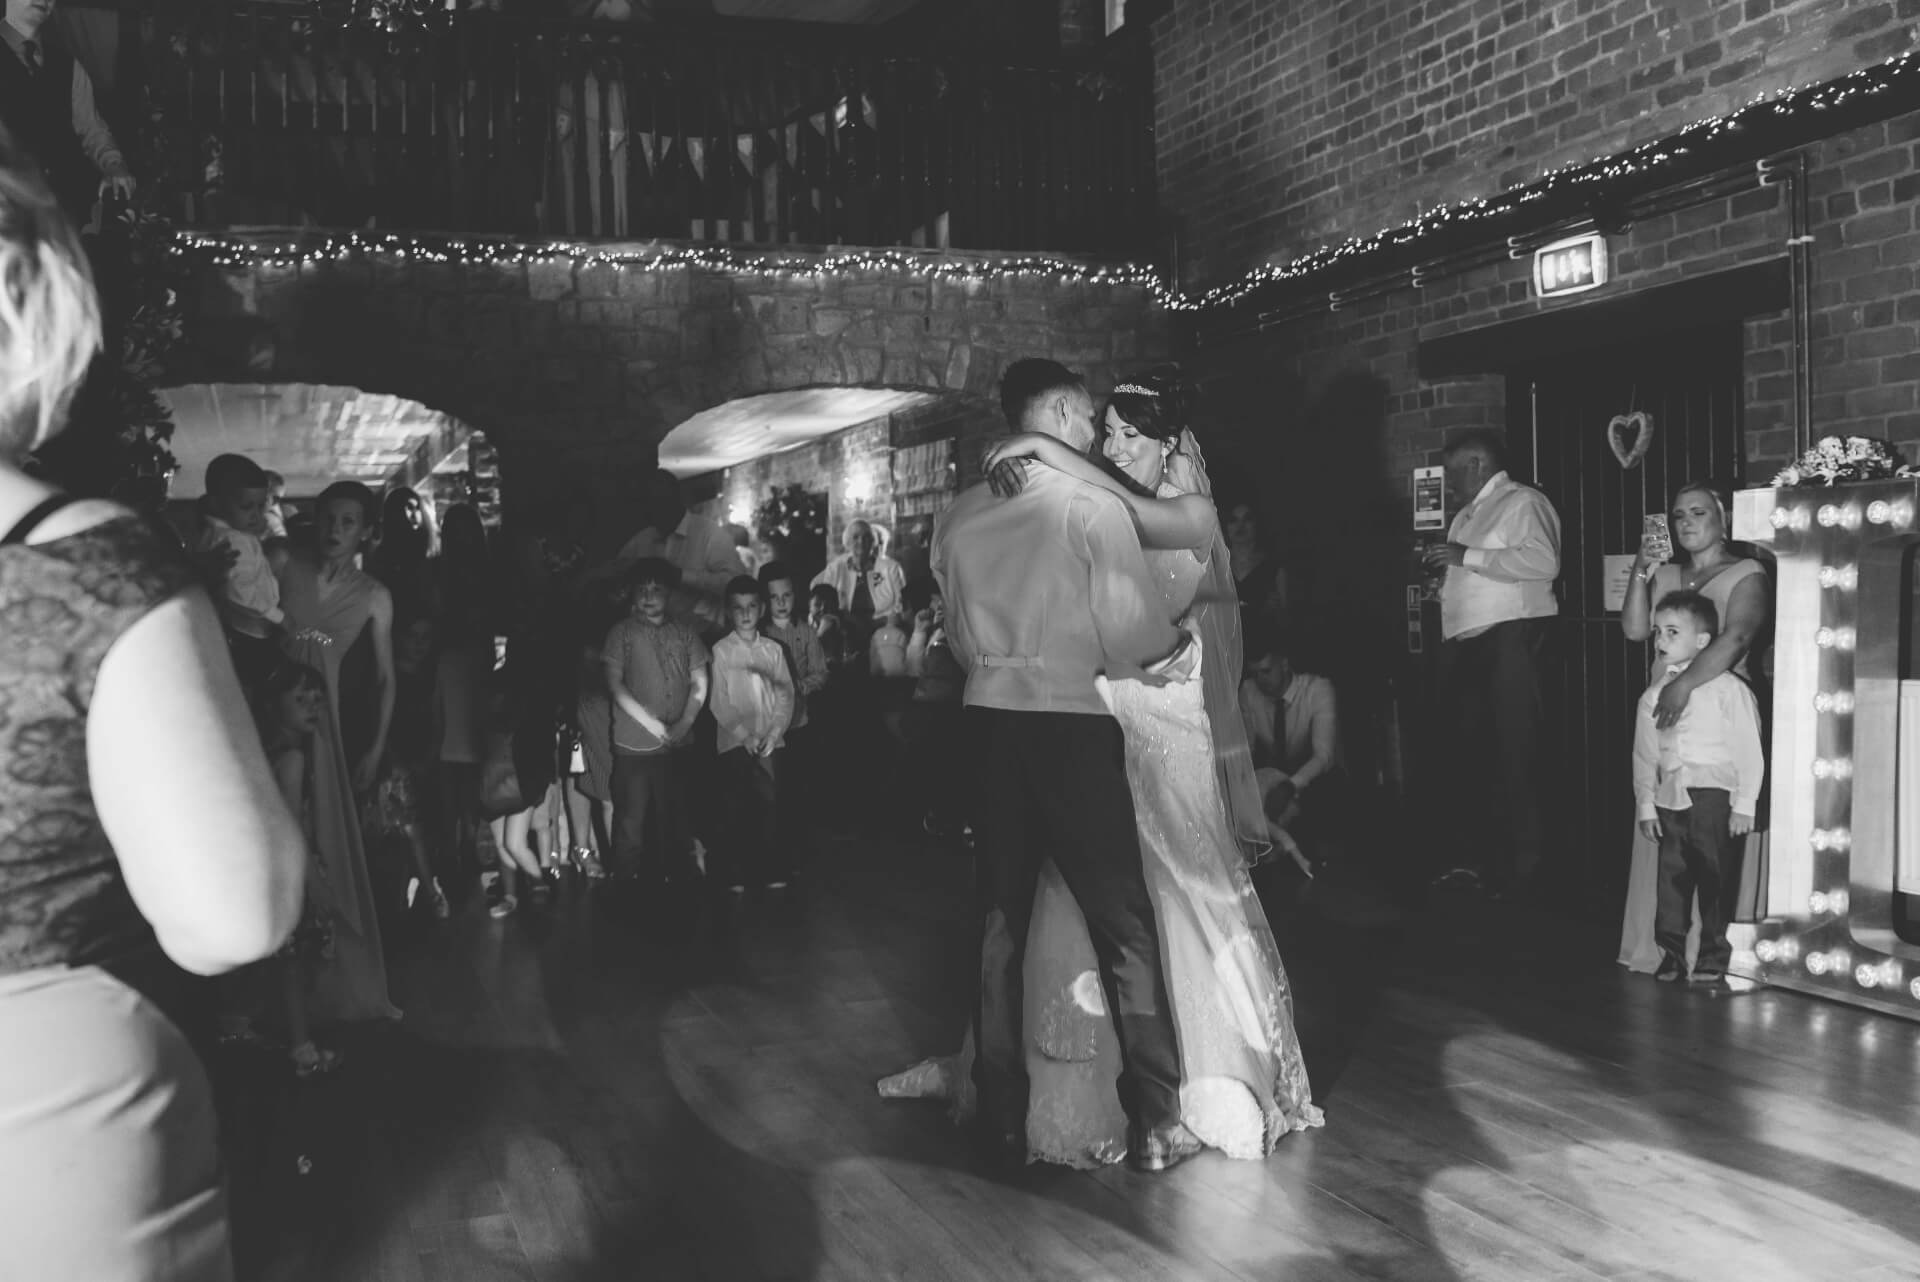 Mr and Mrs Burton's First dance at Whaplode Manor Wedding Reception - Black and white wedding photograph by Slice of Life Photography, Lincolnshire wedding photographer